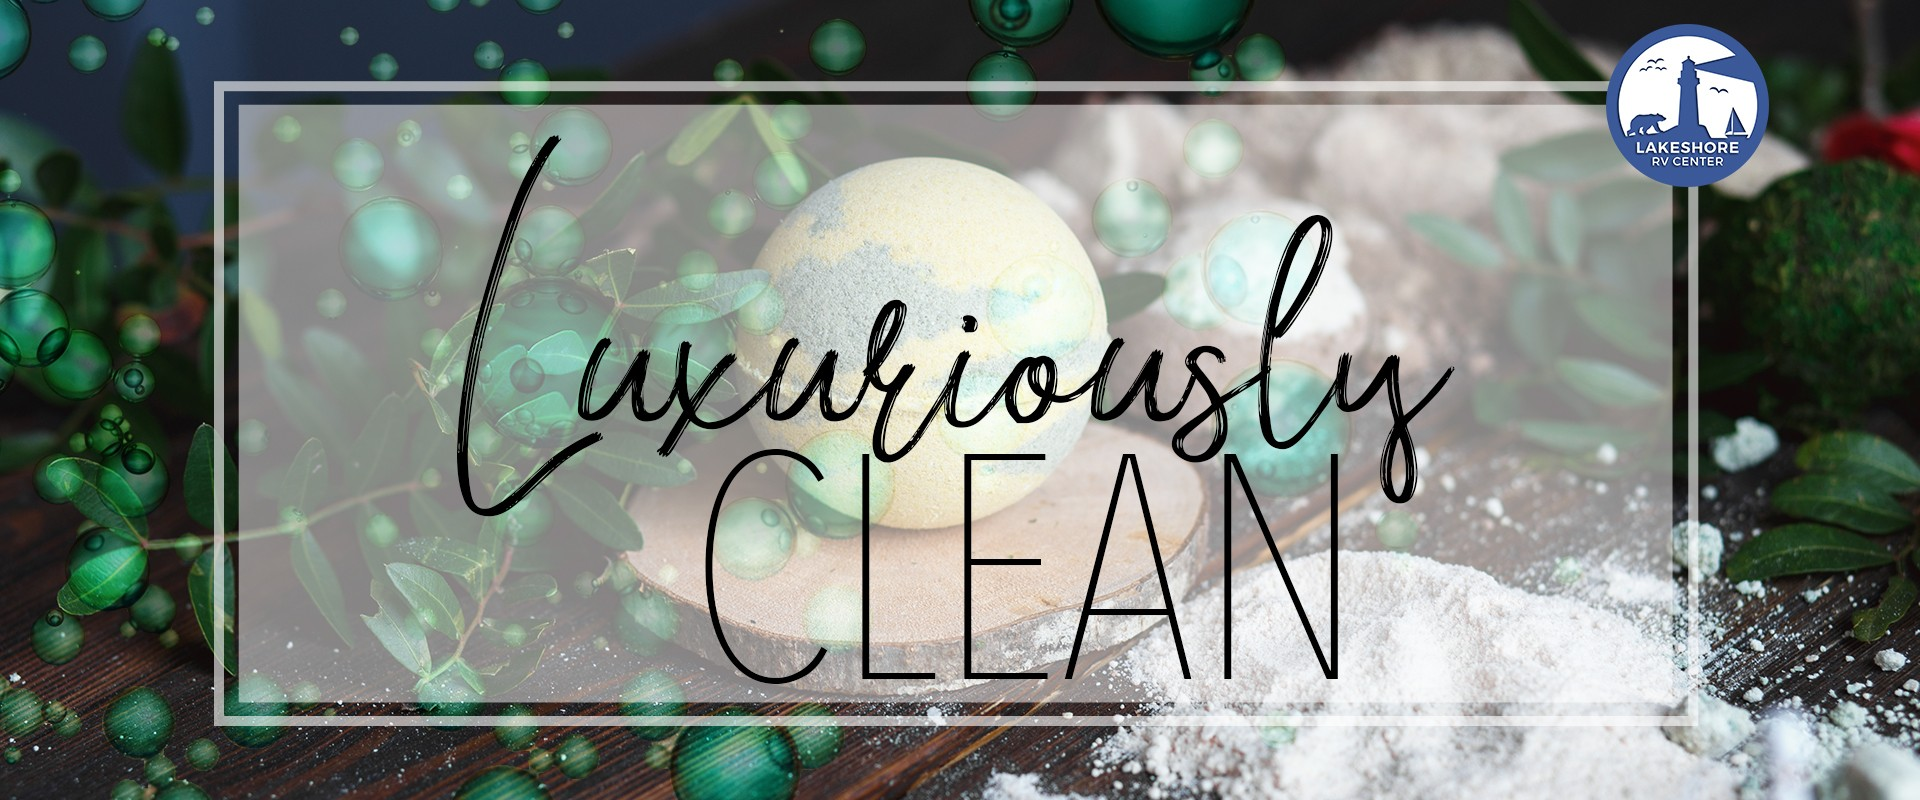 Luxuriously clean - bath bombs for cleaning